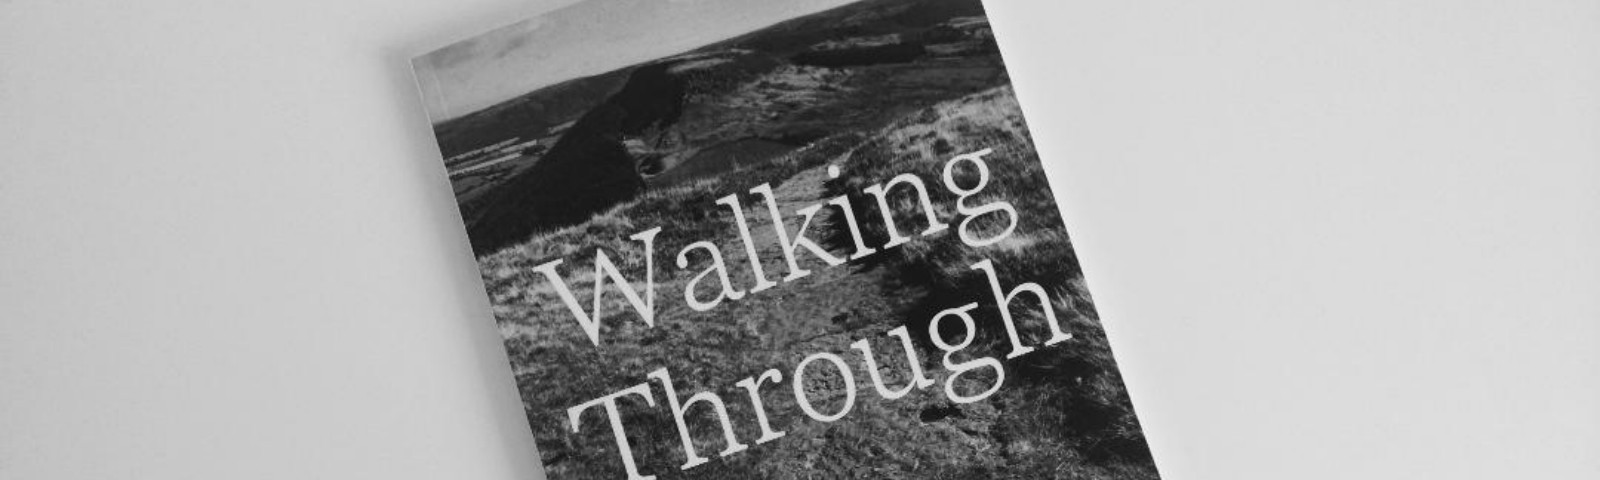 """Poetry collection called """"Walking Through"""" by Chris Bridge. On the book is a photo of countryside."""